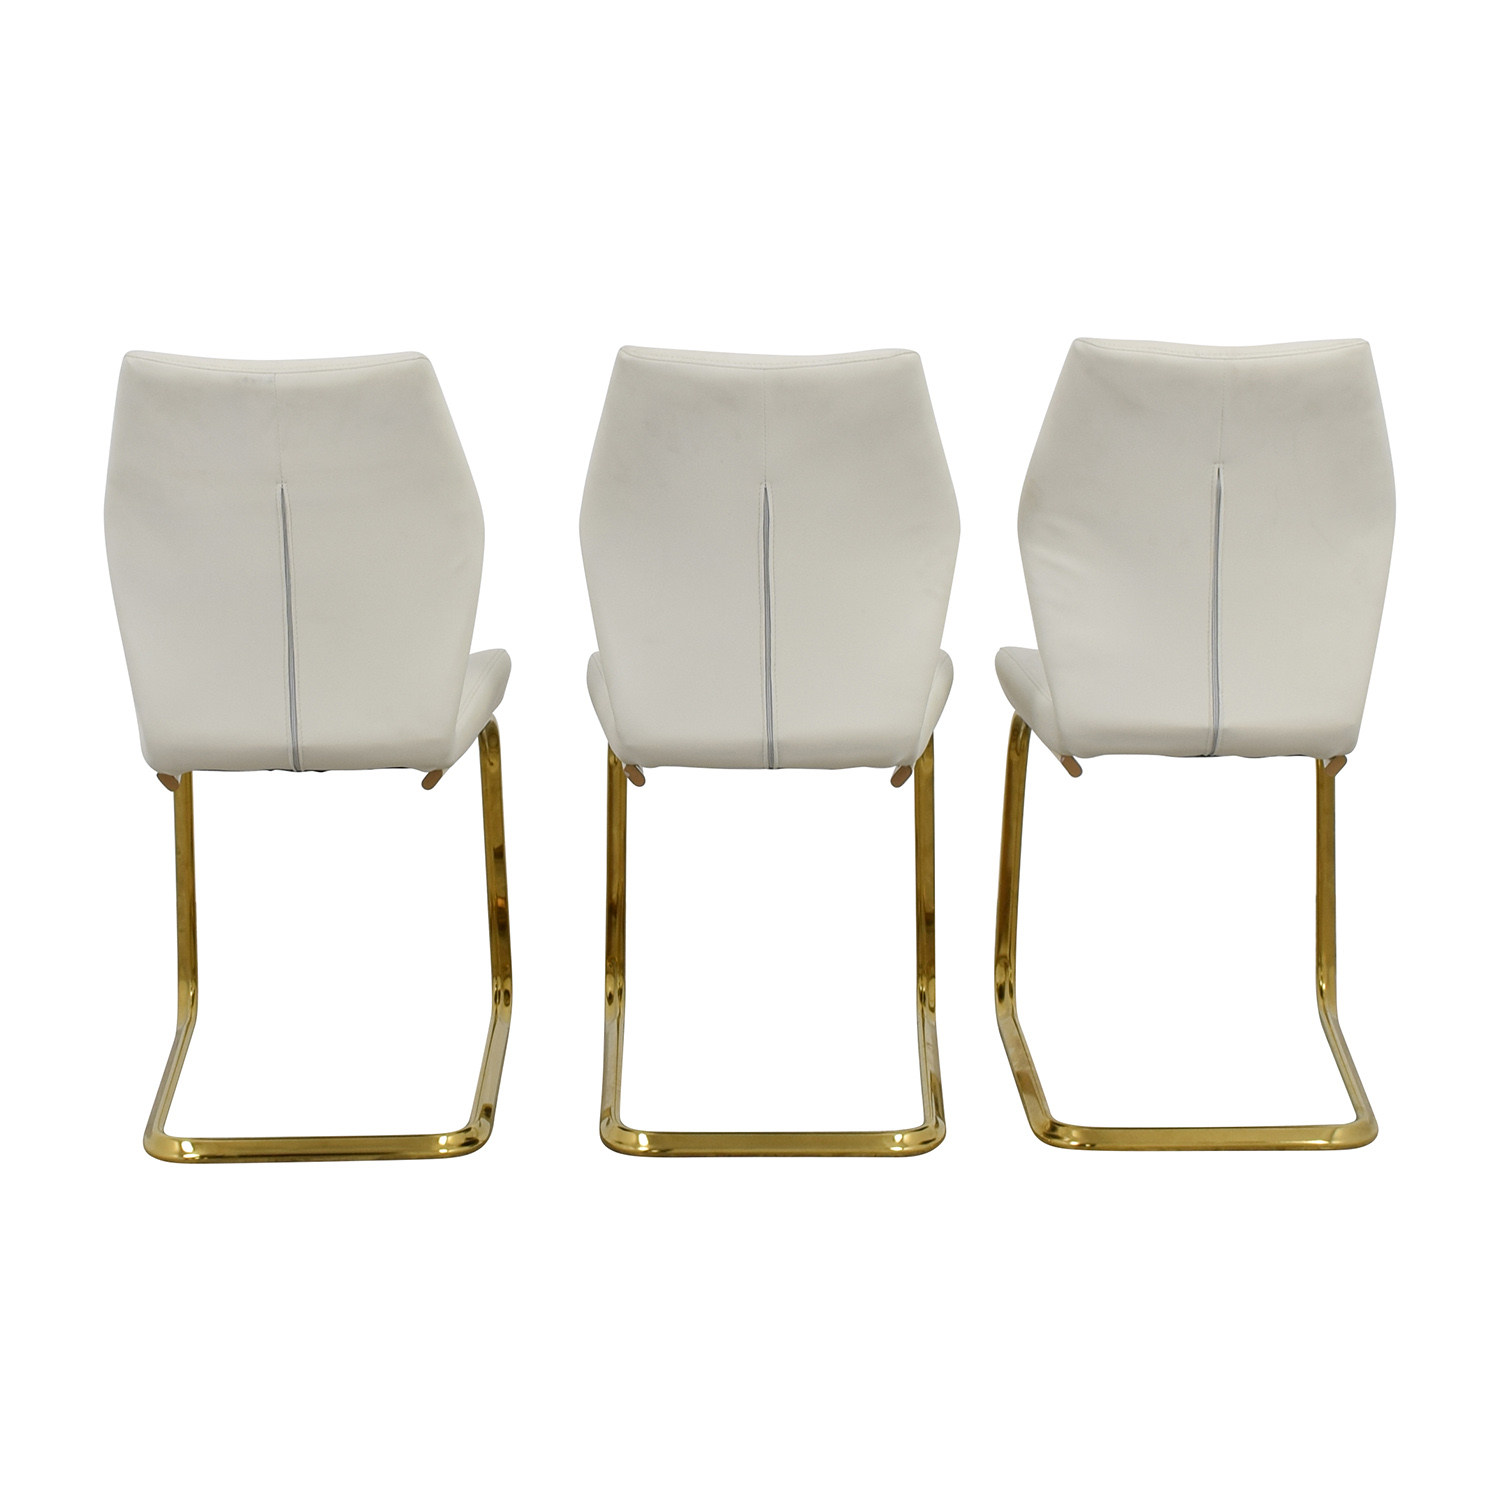 Nicole White Leather Dining Chairs whtie